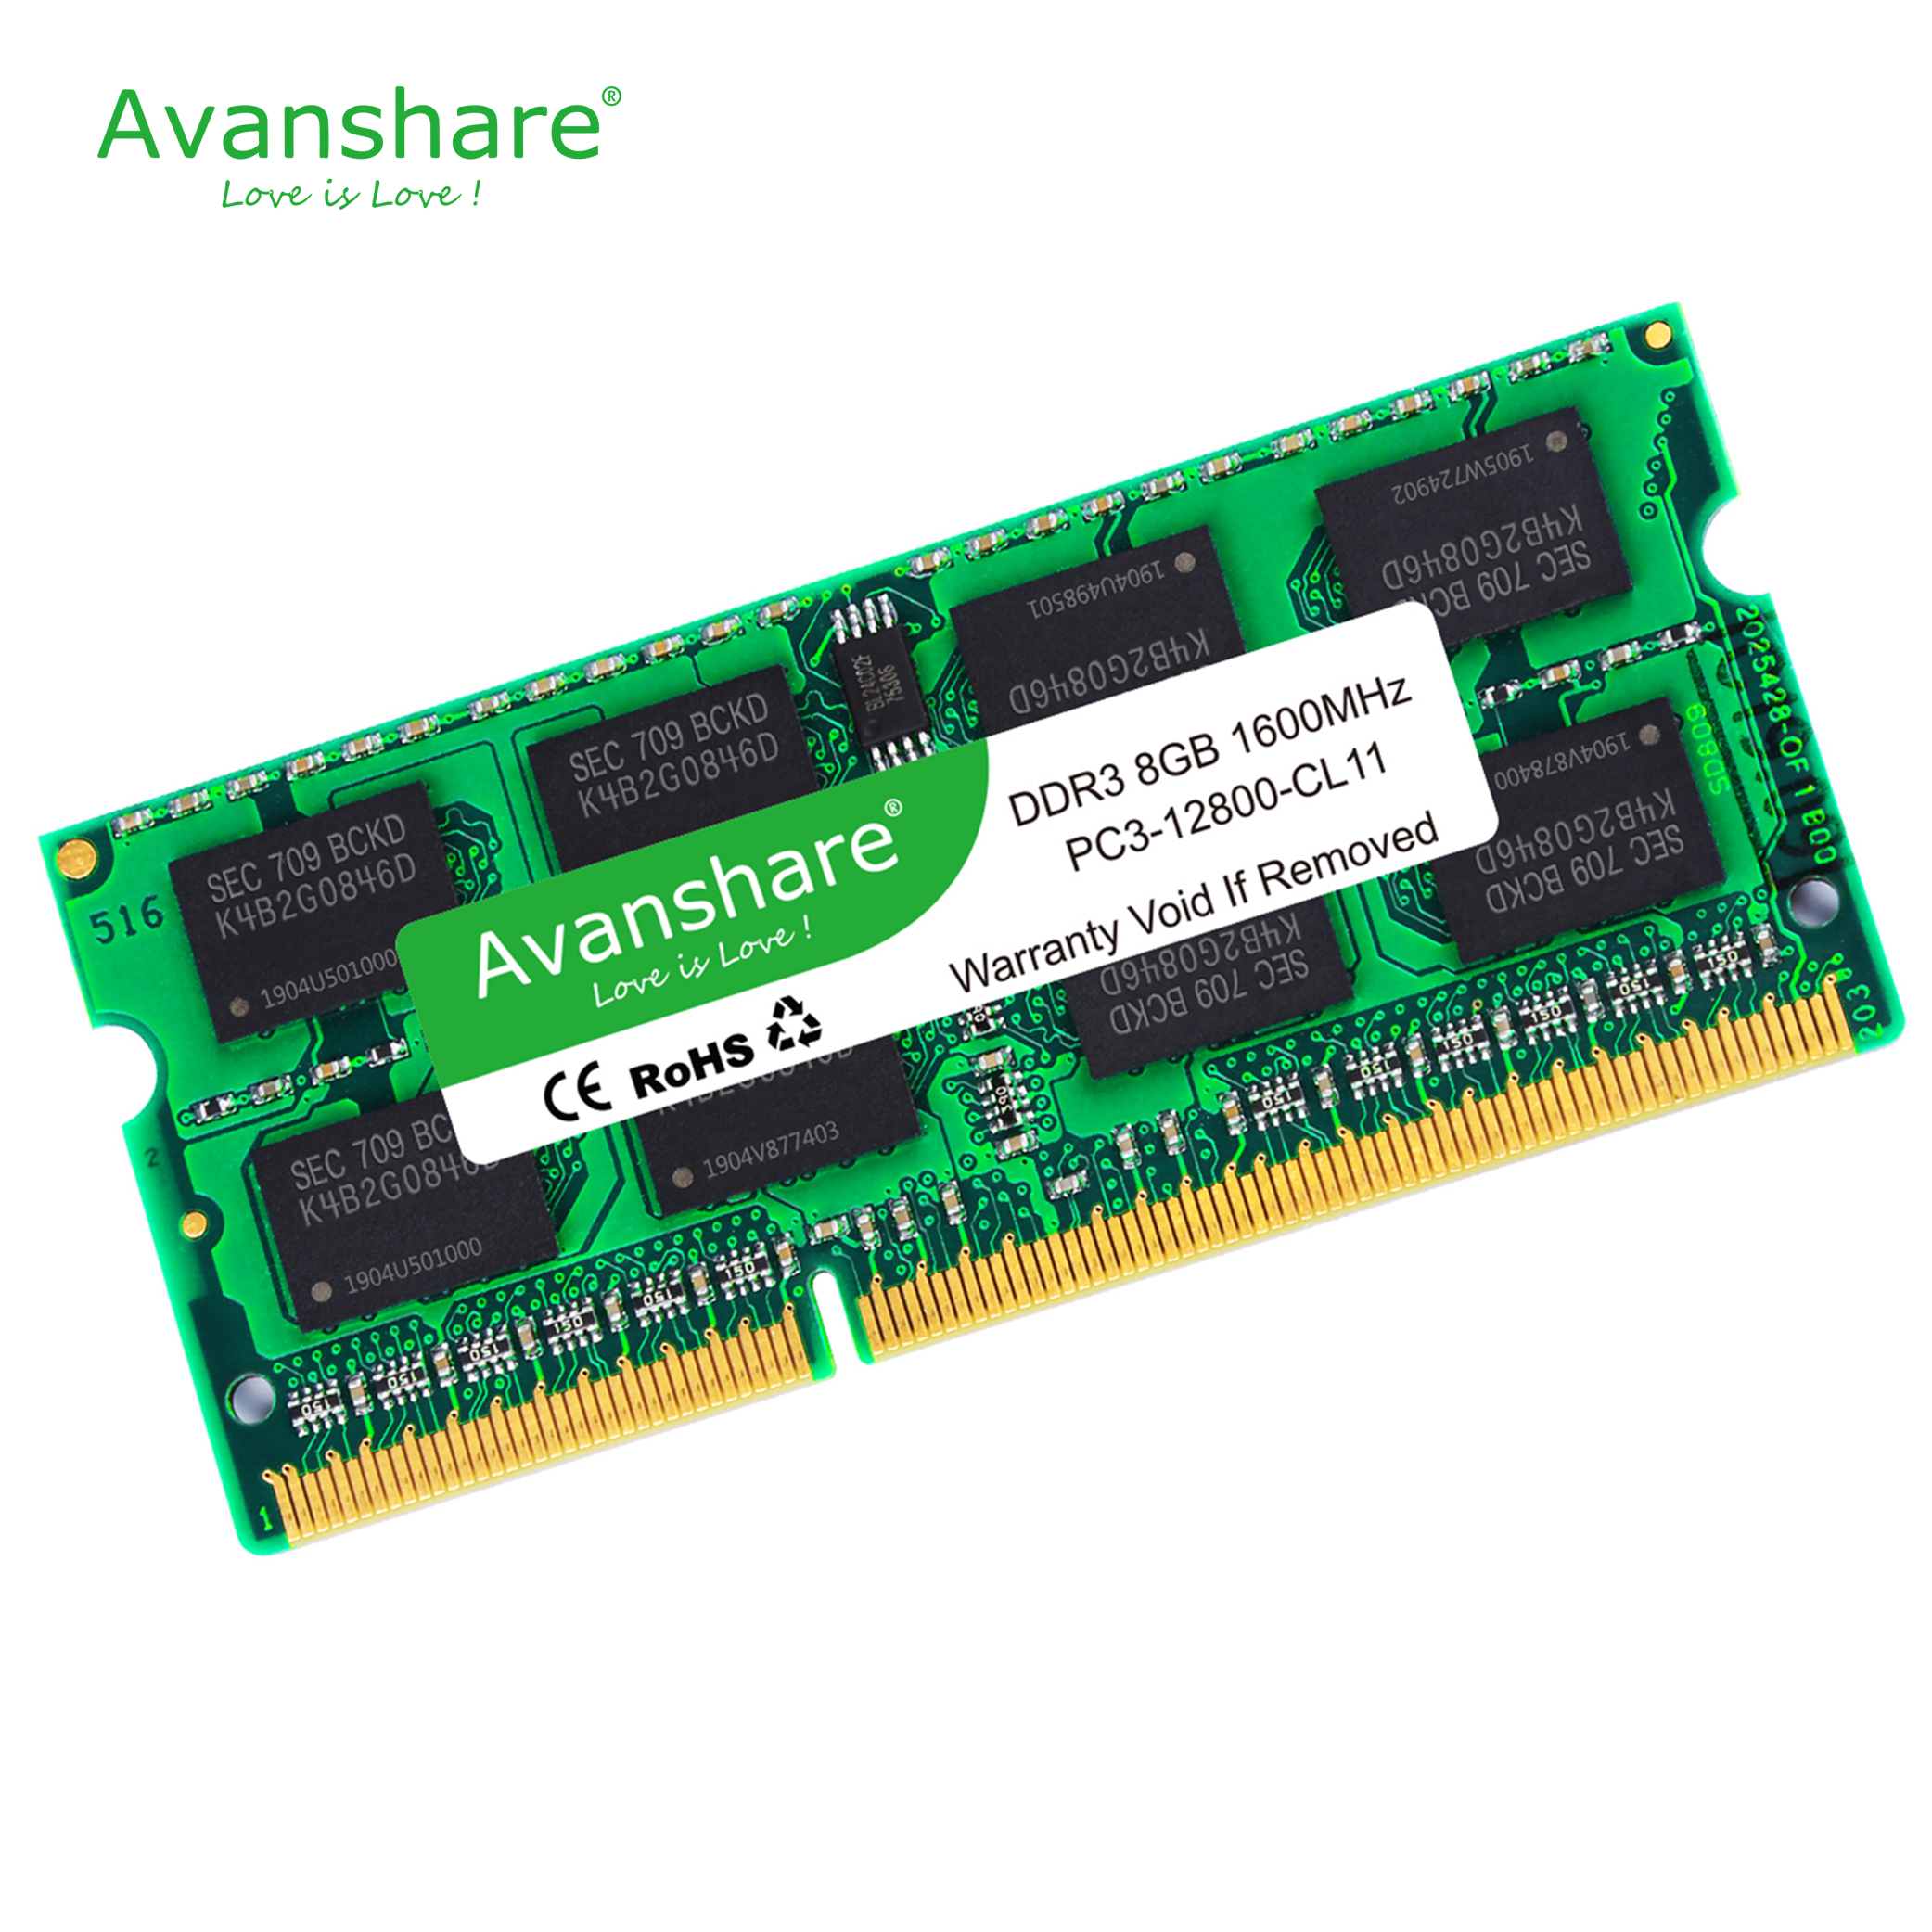 Avanshare 2GB 4GB 8GB <font><b>DDR3</b></font> DDR3L NBL NB3 <font><b>1066MHz</b></font> 1333MHz 1600MHz Laptop Memory RAM 1.35V 1.5V Notebook Stick Lifetime Warranty image